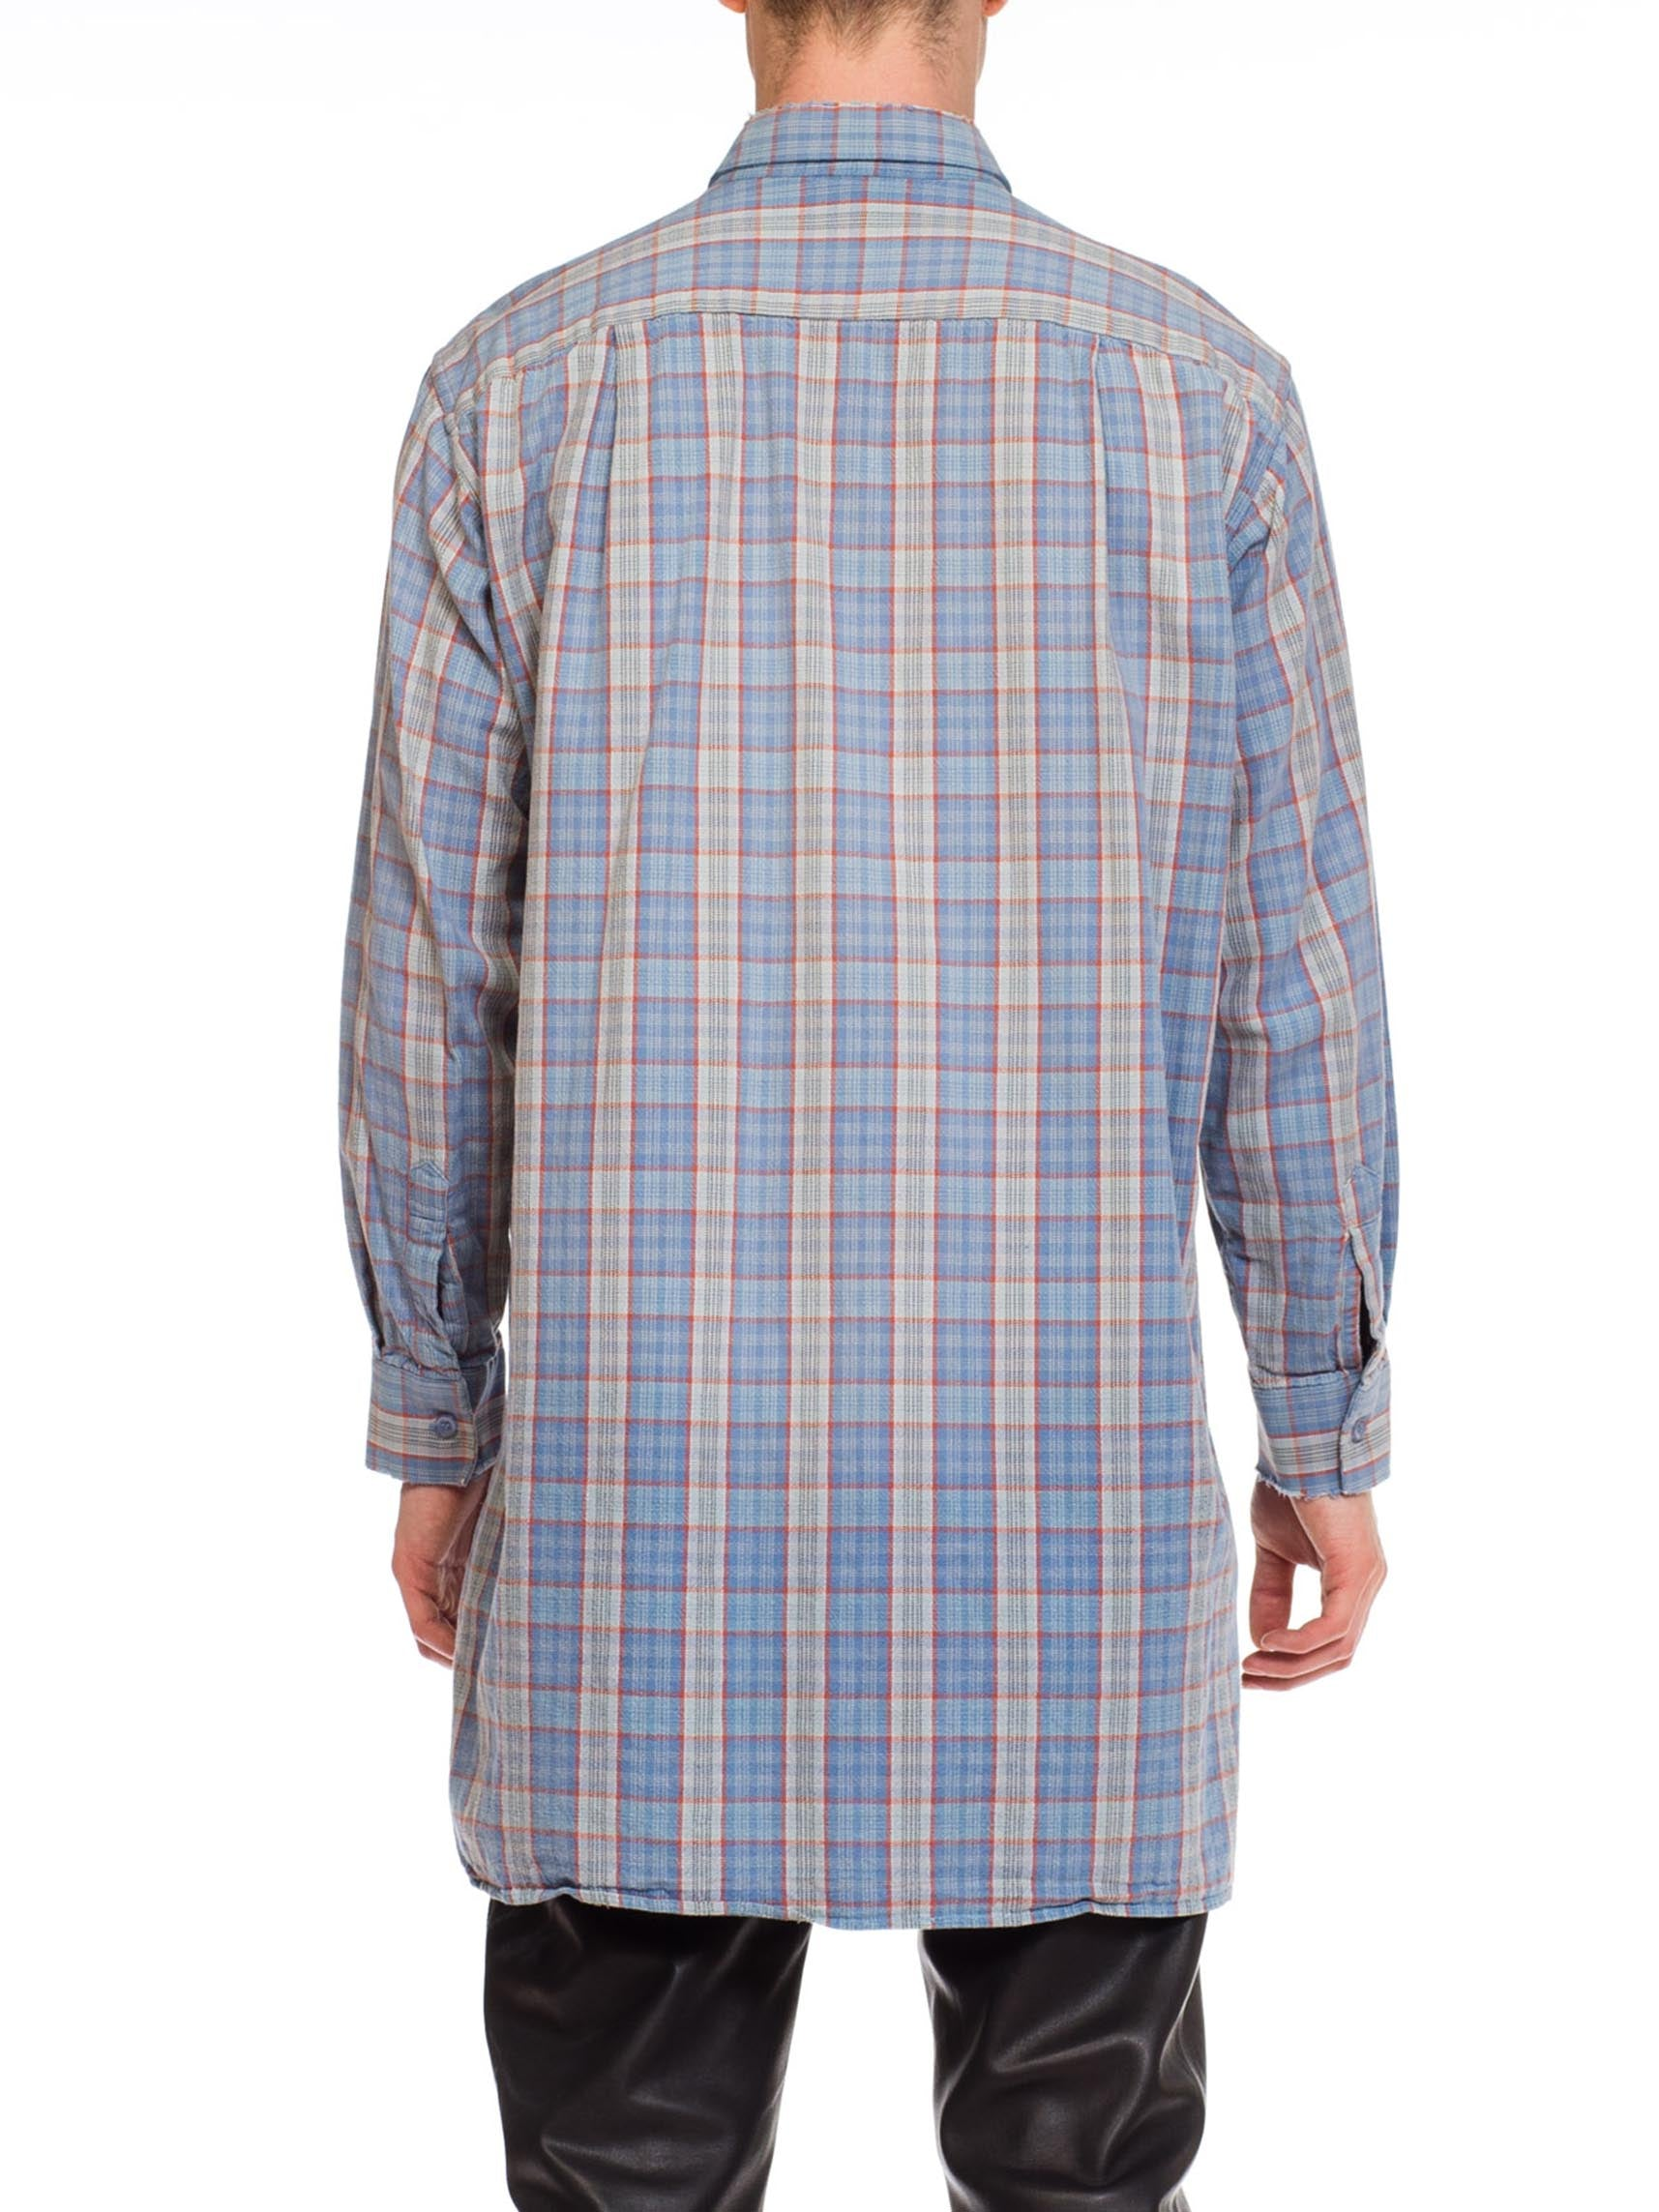 1950S Blue Plaid Cotton Men's Tunic Shirt